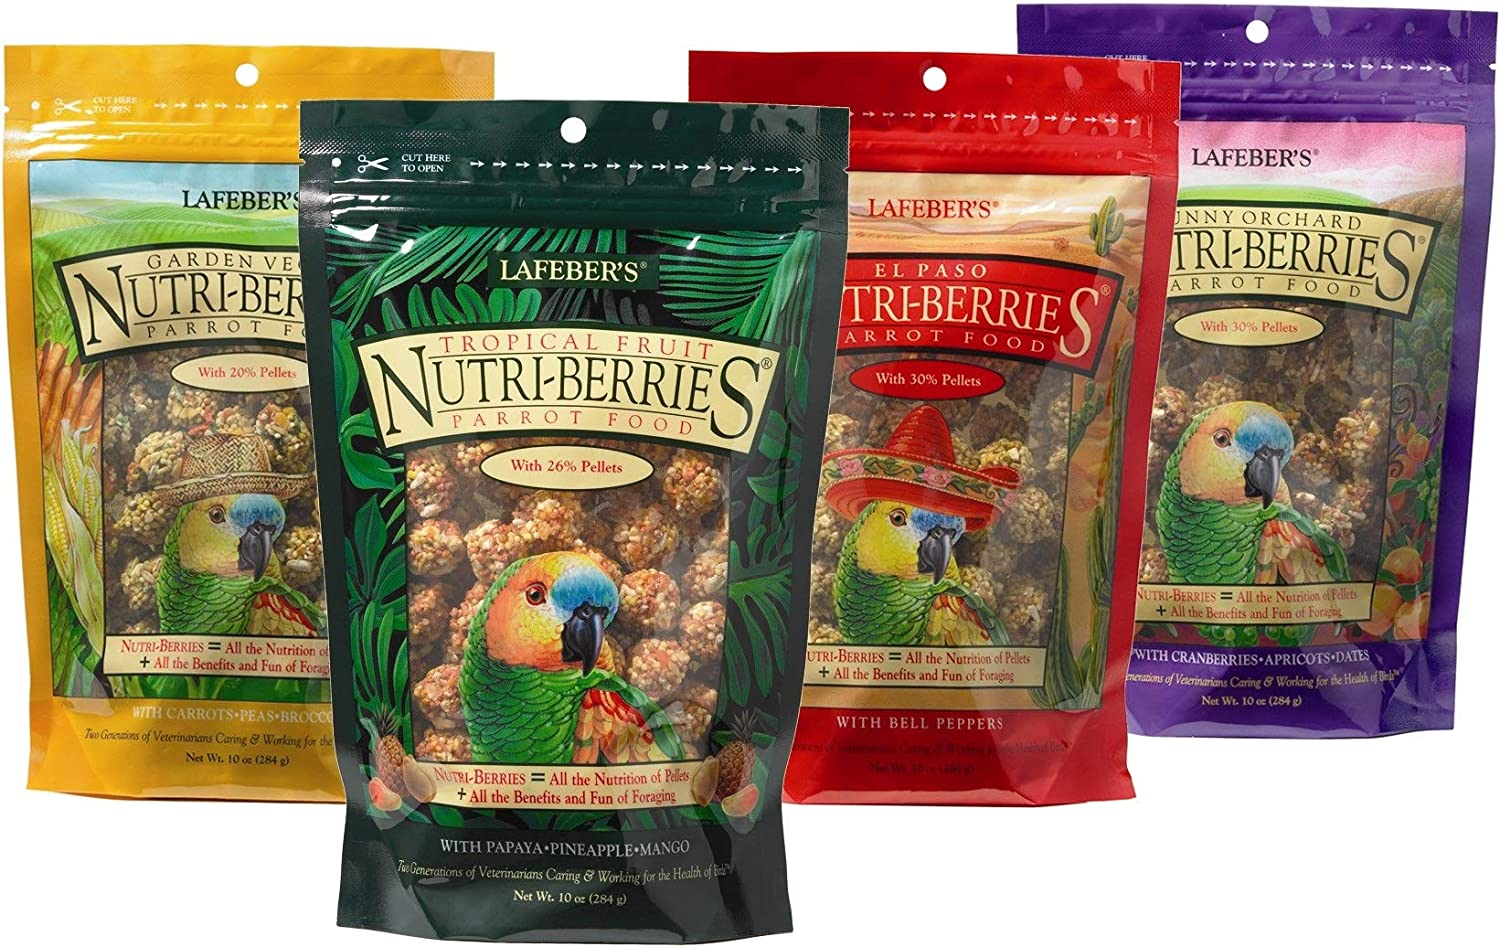 LAFEBER'S 4 Pack Gourmet Nutri-Berries Pet Bird Food Bundle with Tropical Fruit, El Paso, Sunny Orchard, and Garden Veggie for Parrots, 10 oz Each